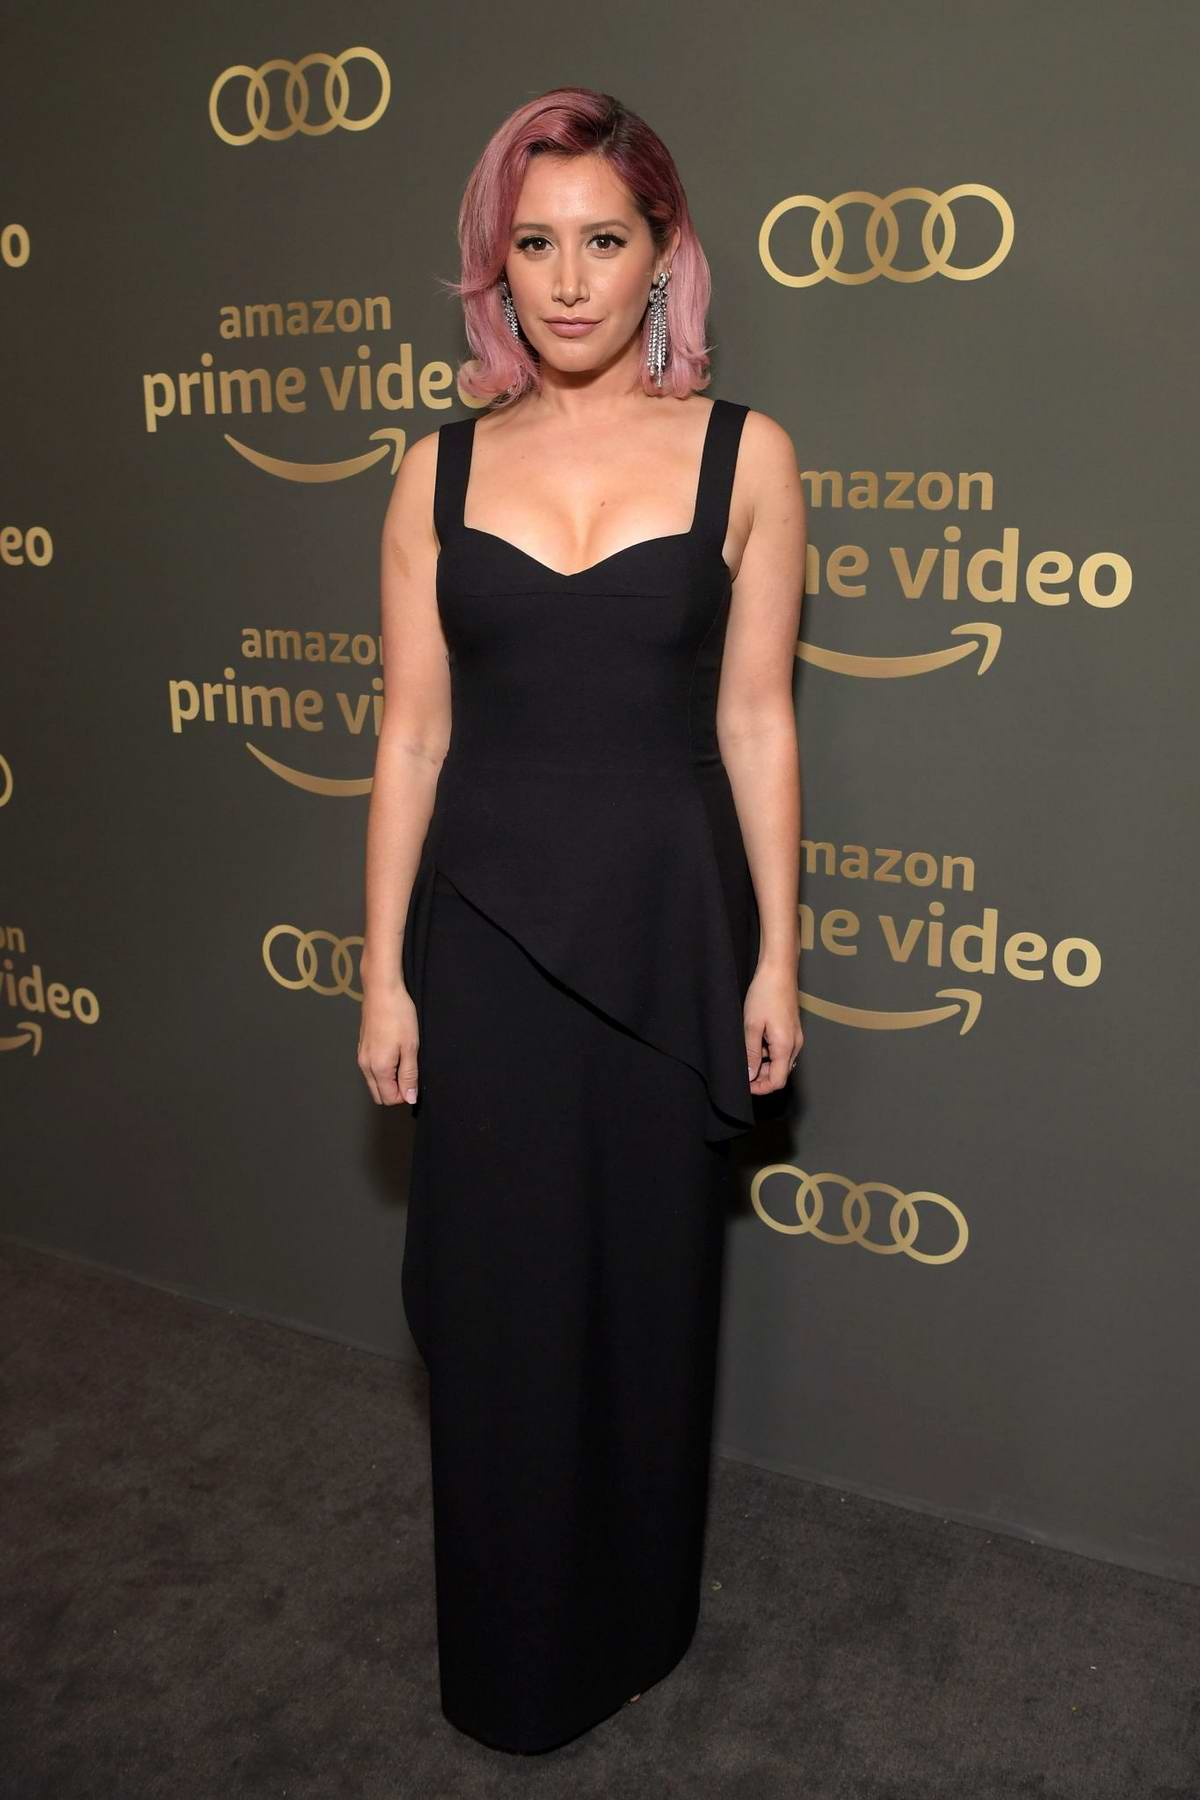 Ashley Tisdale attends the Amazon Prime Video's Golden Globe Awards After Party at the Beverly Hilton Hotel in Beverly Hills, California